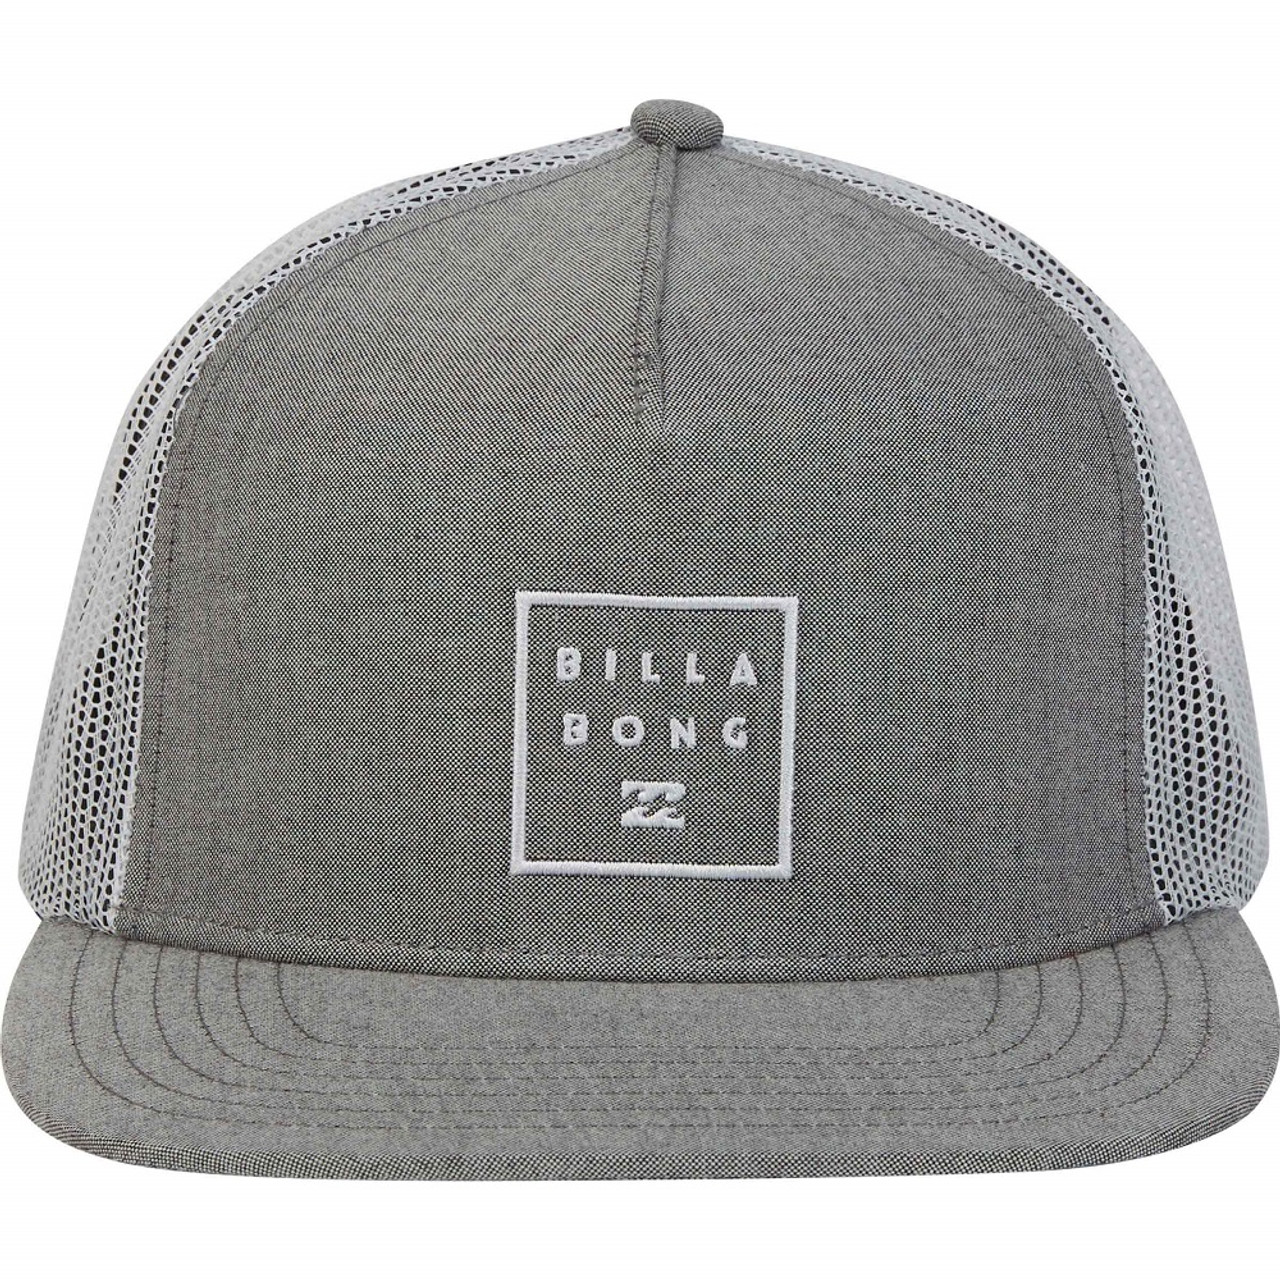 f93f5a717b3 Billabong Stacked Trucker Hat Grey White Onesize